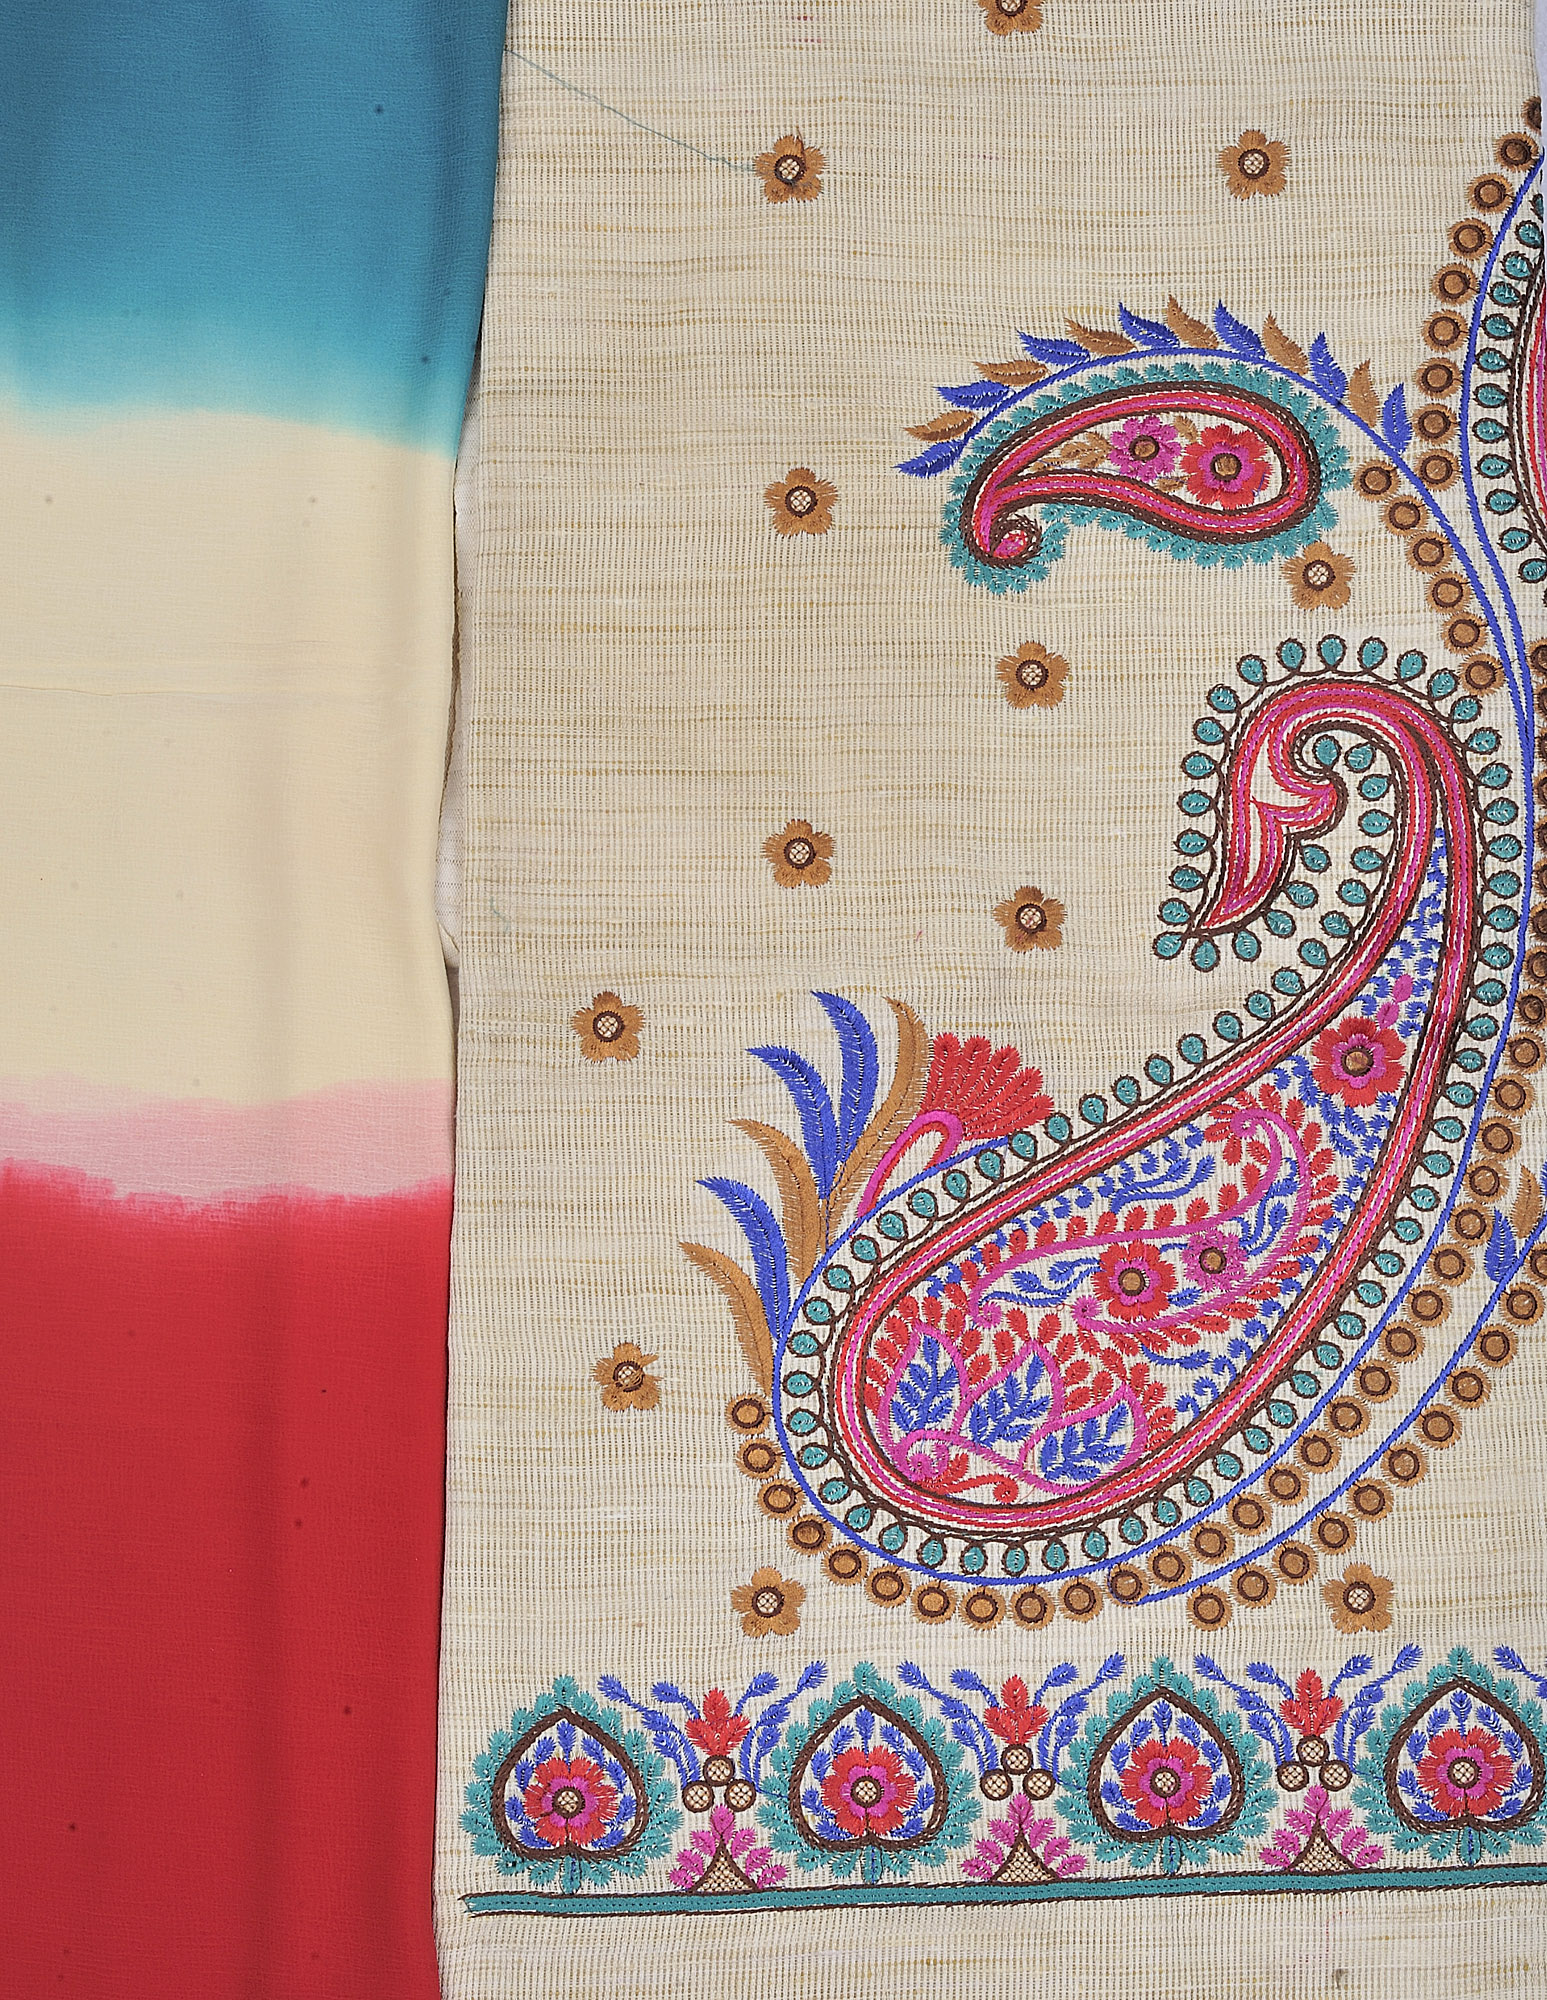 Rug Book Shop - RBS Catalog Pictures of phulkari embroidery